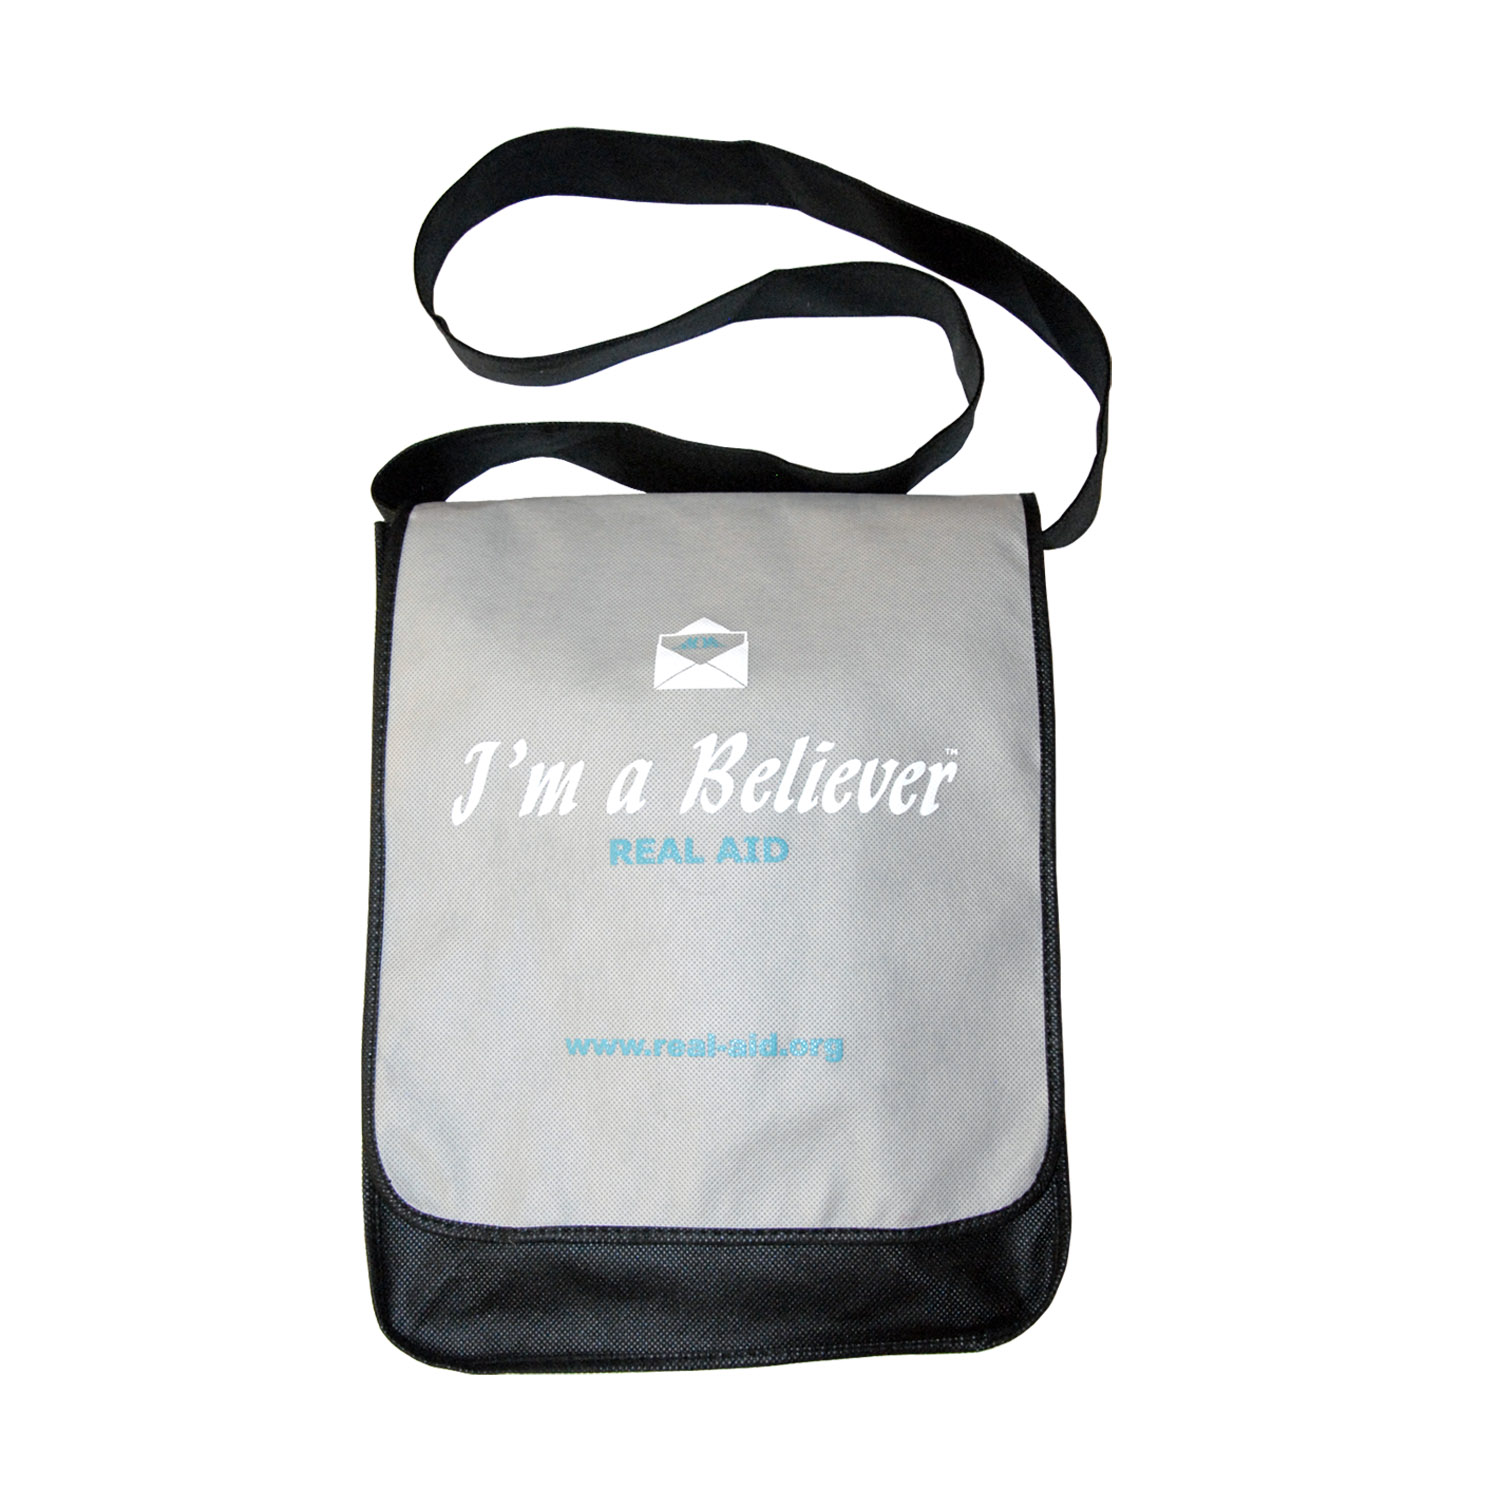 I'm a Believer' Eco Shoulderbag